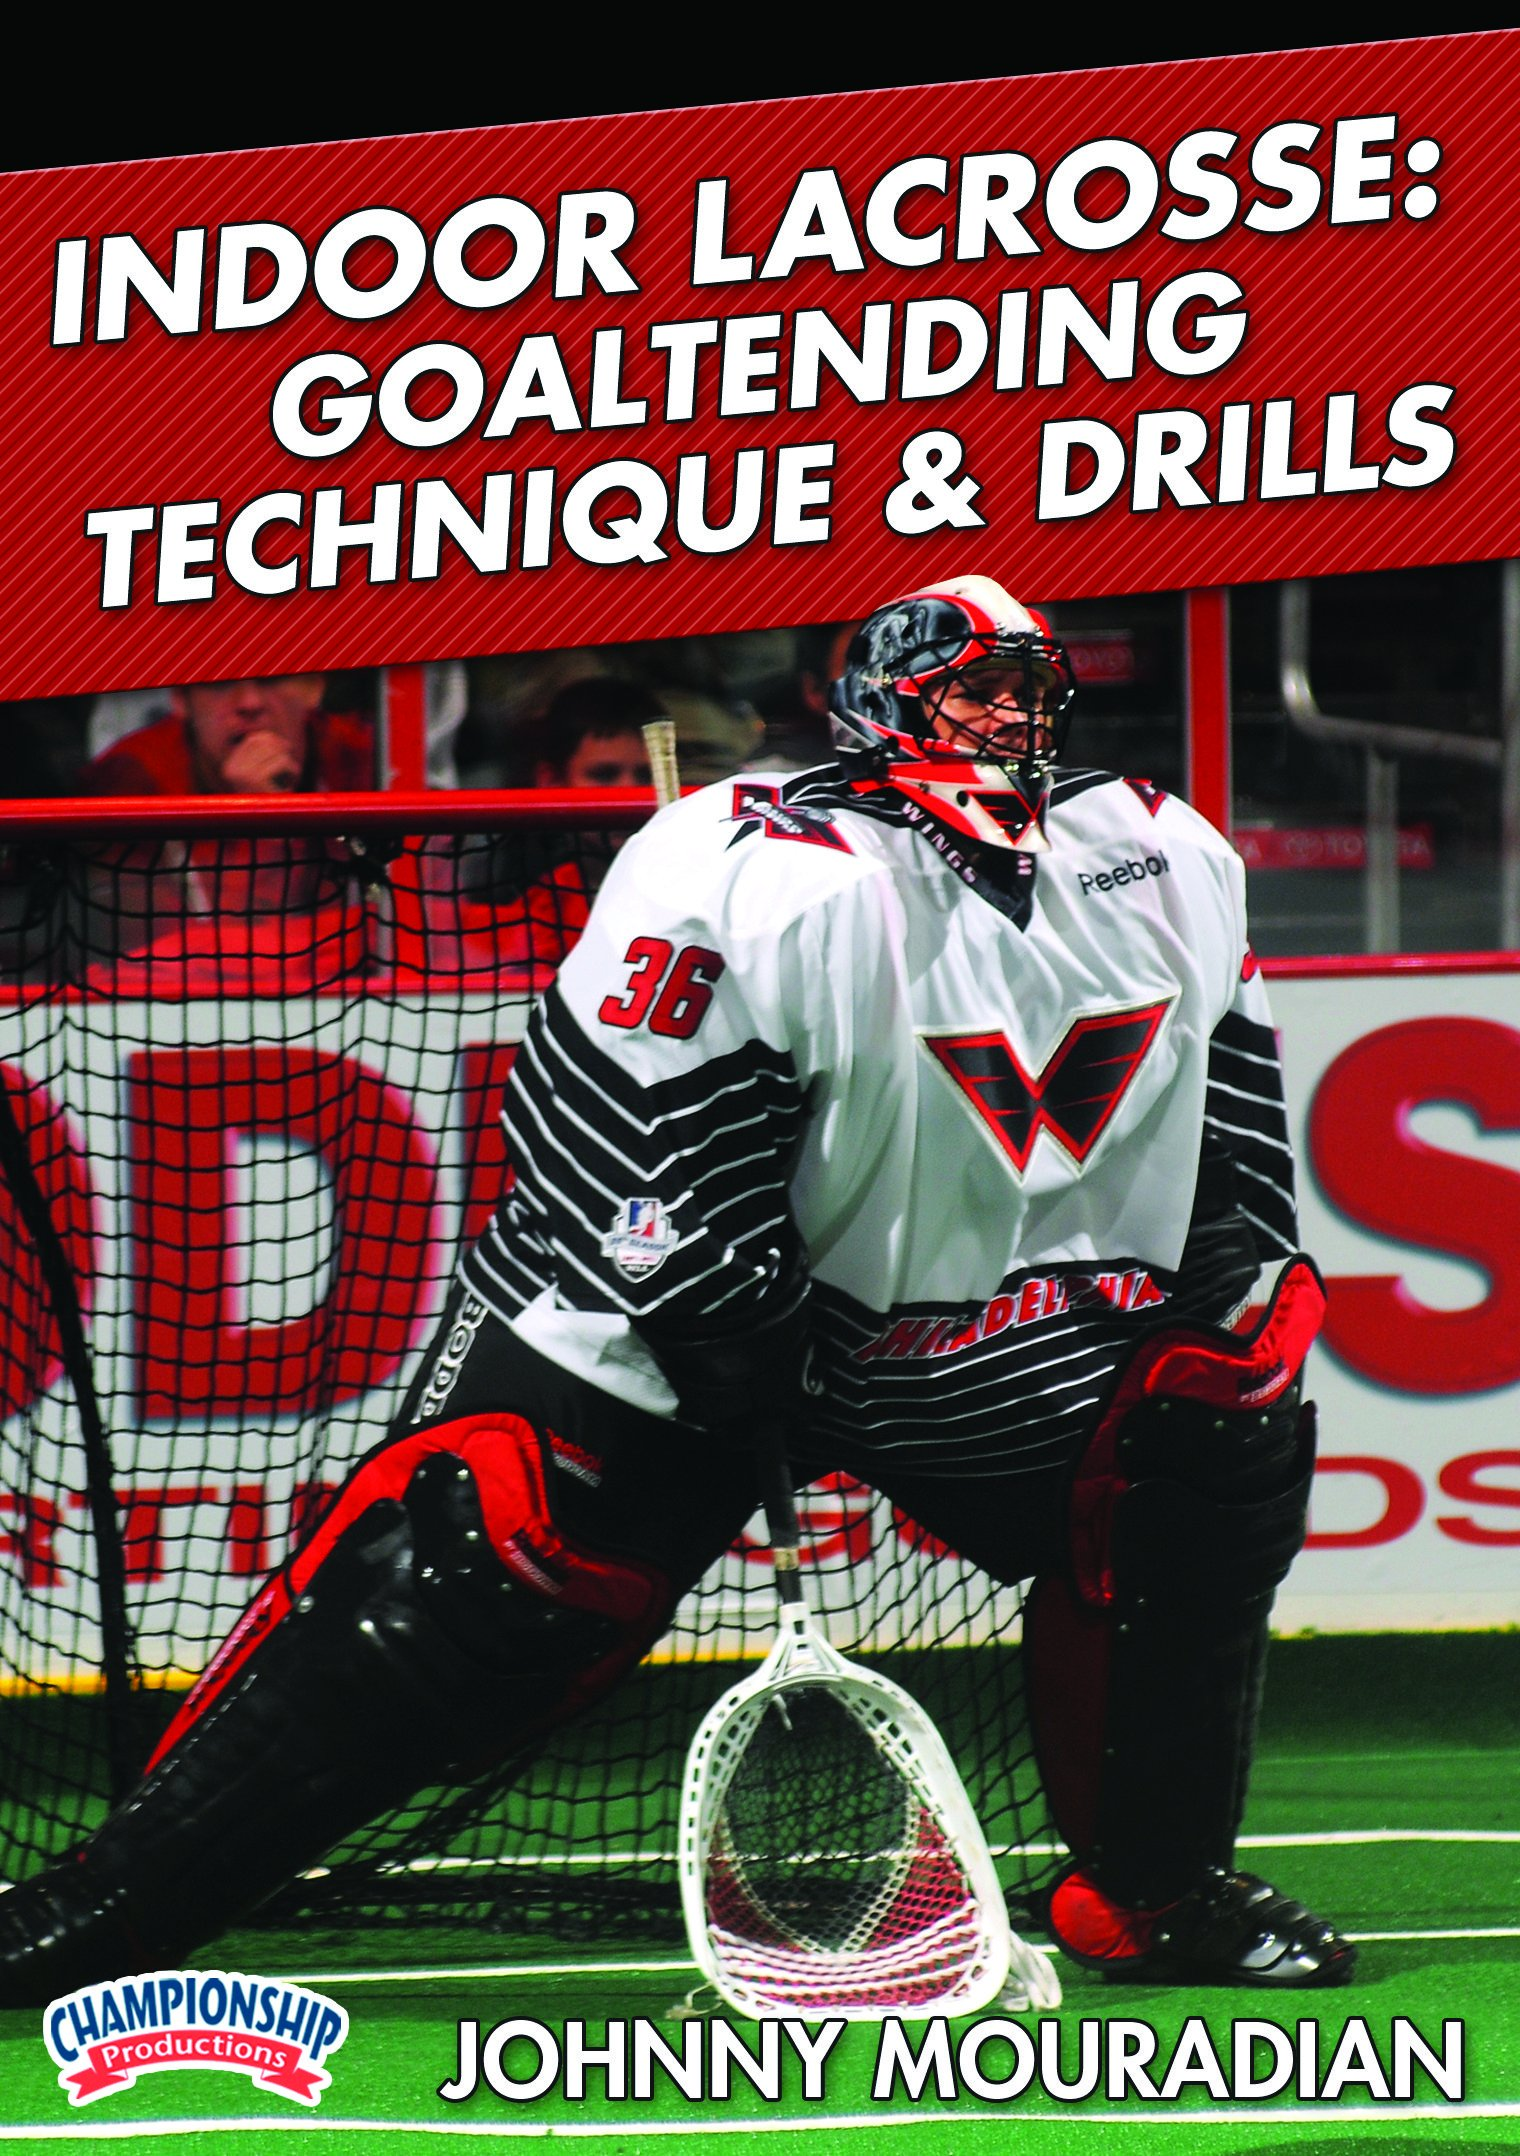 Championship Productions D Johnny Mouradian: Indoor Lacrosse: Goaltending Technique and Drills DVD